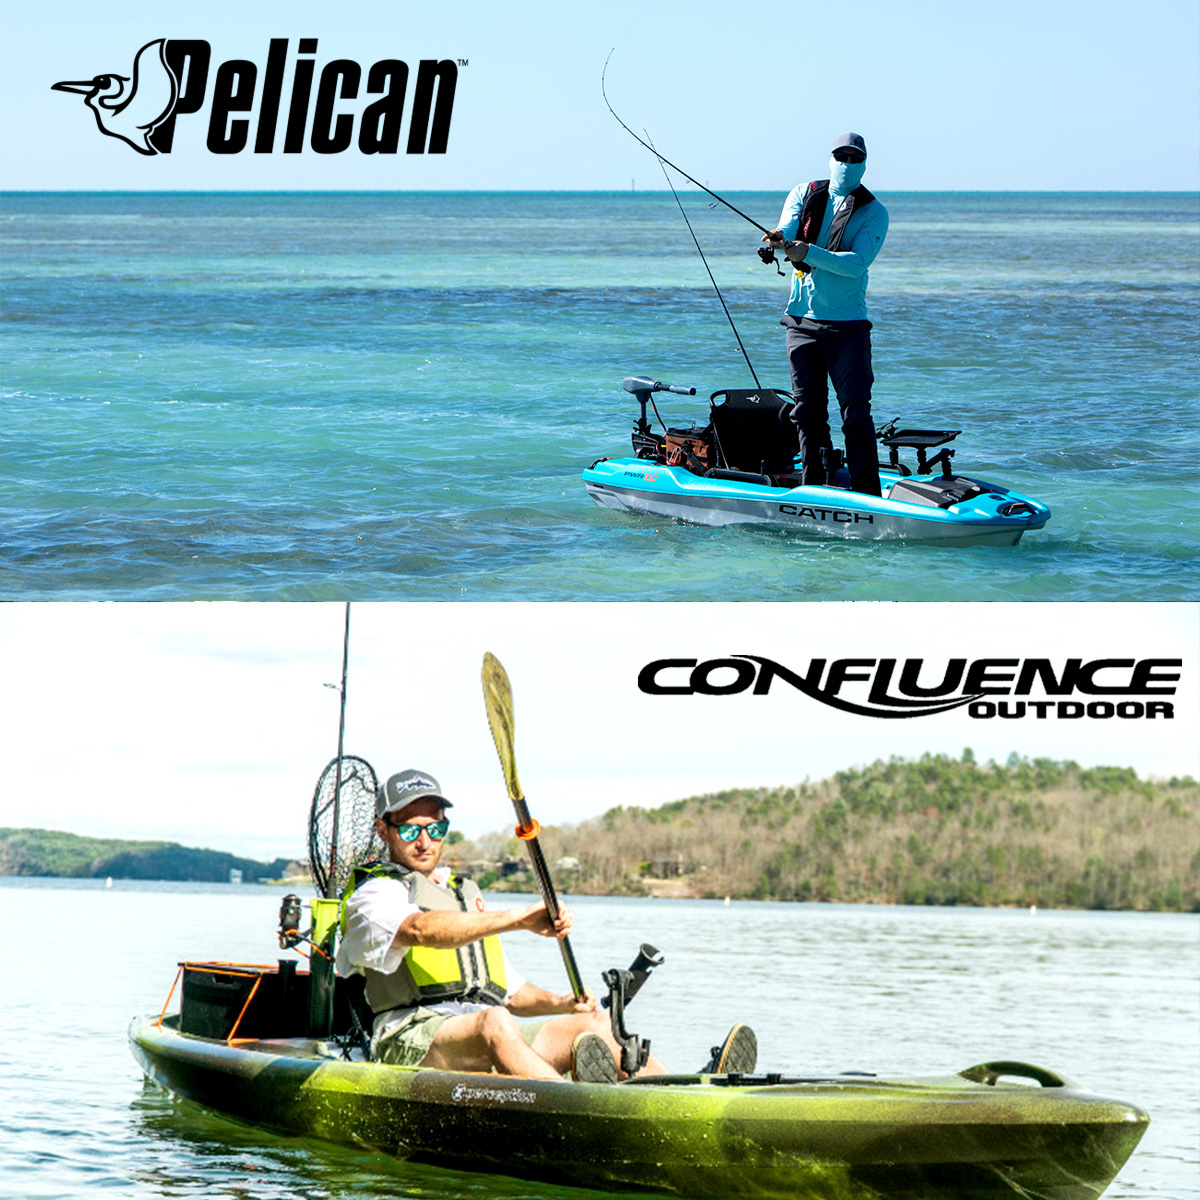 pelican buys confluence 1